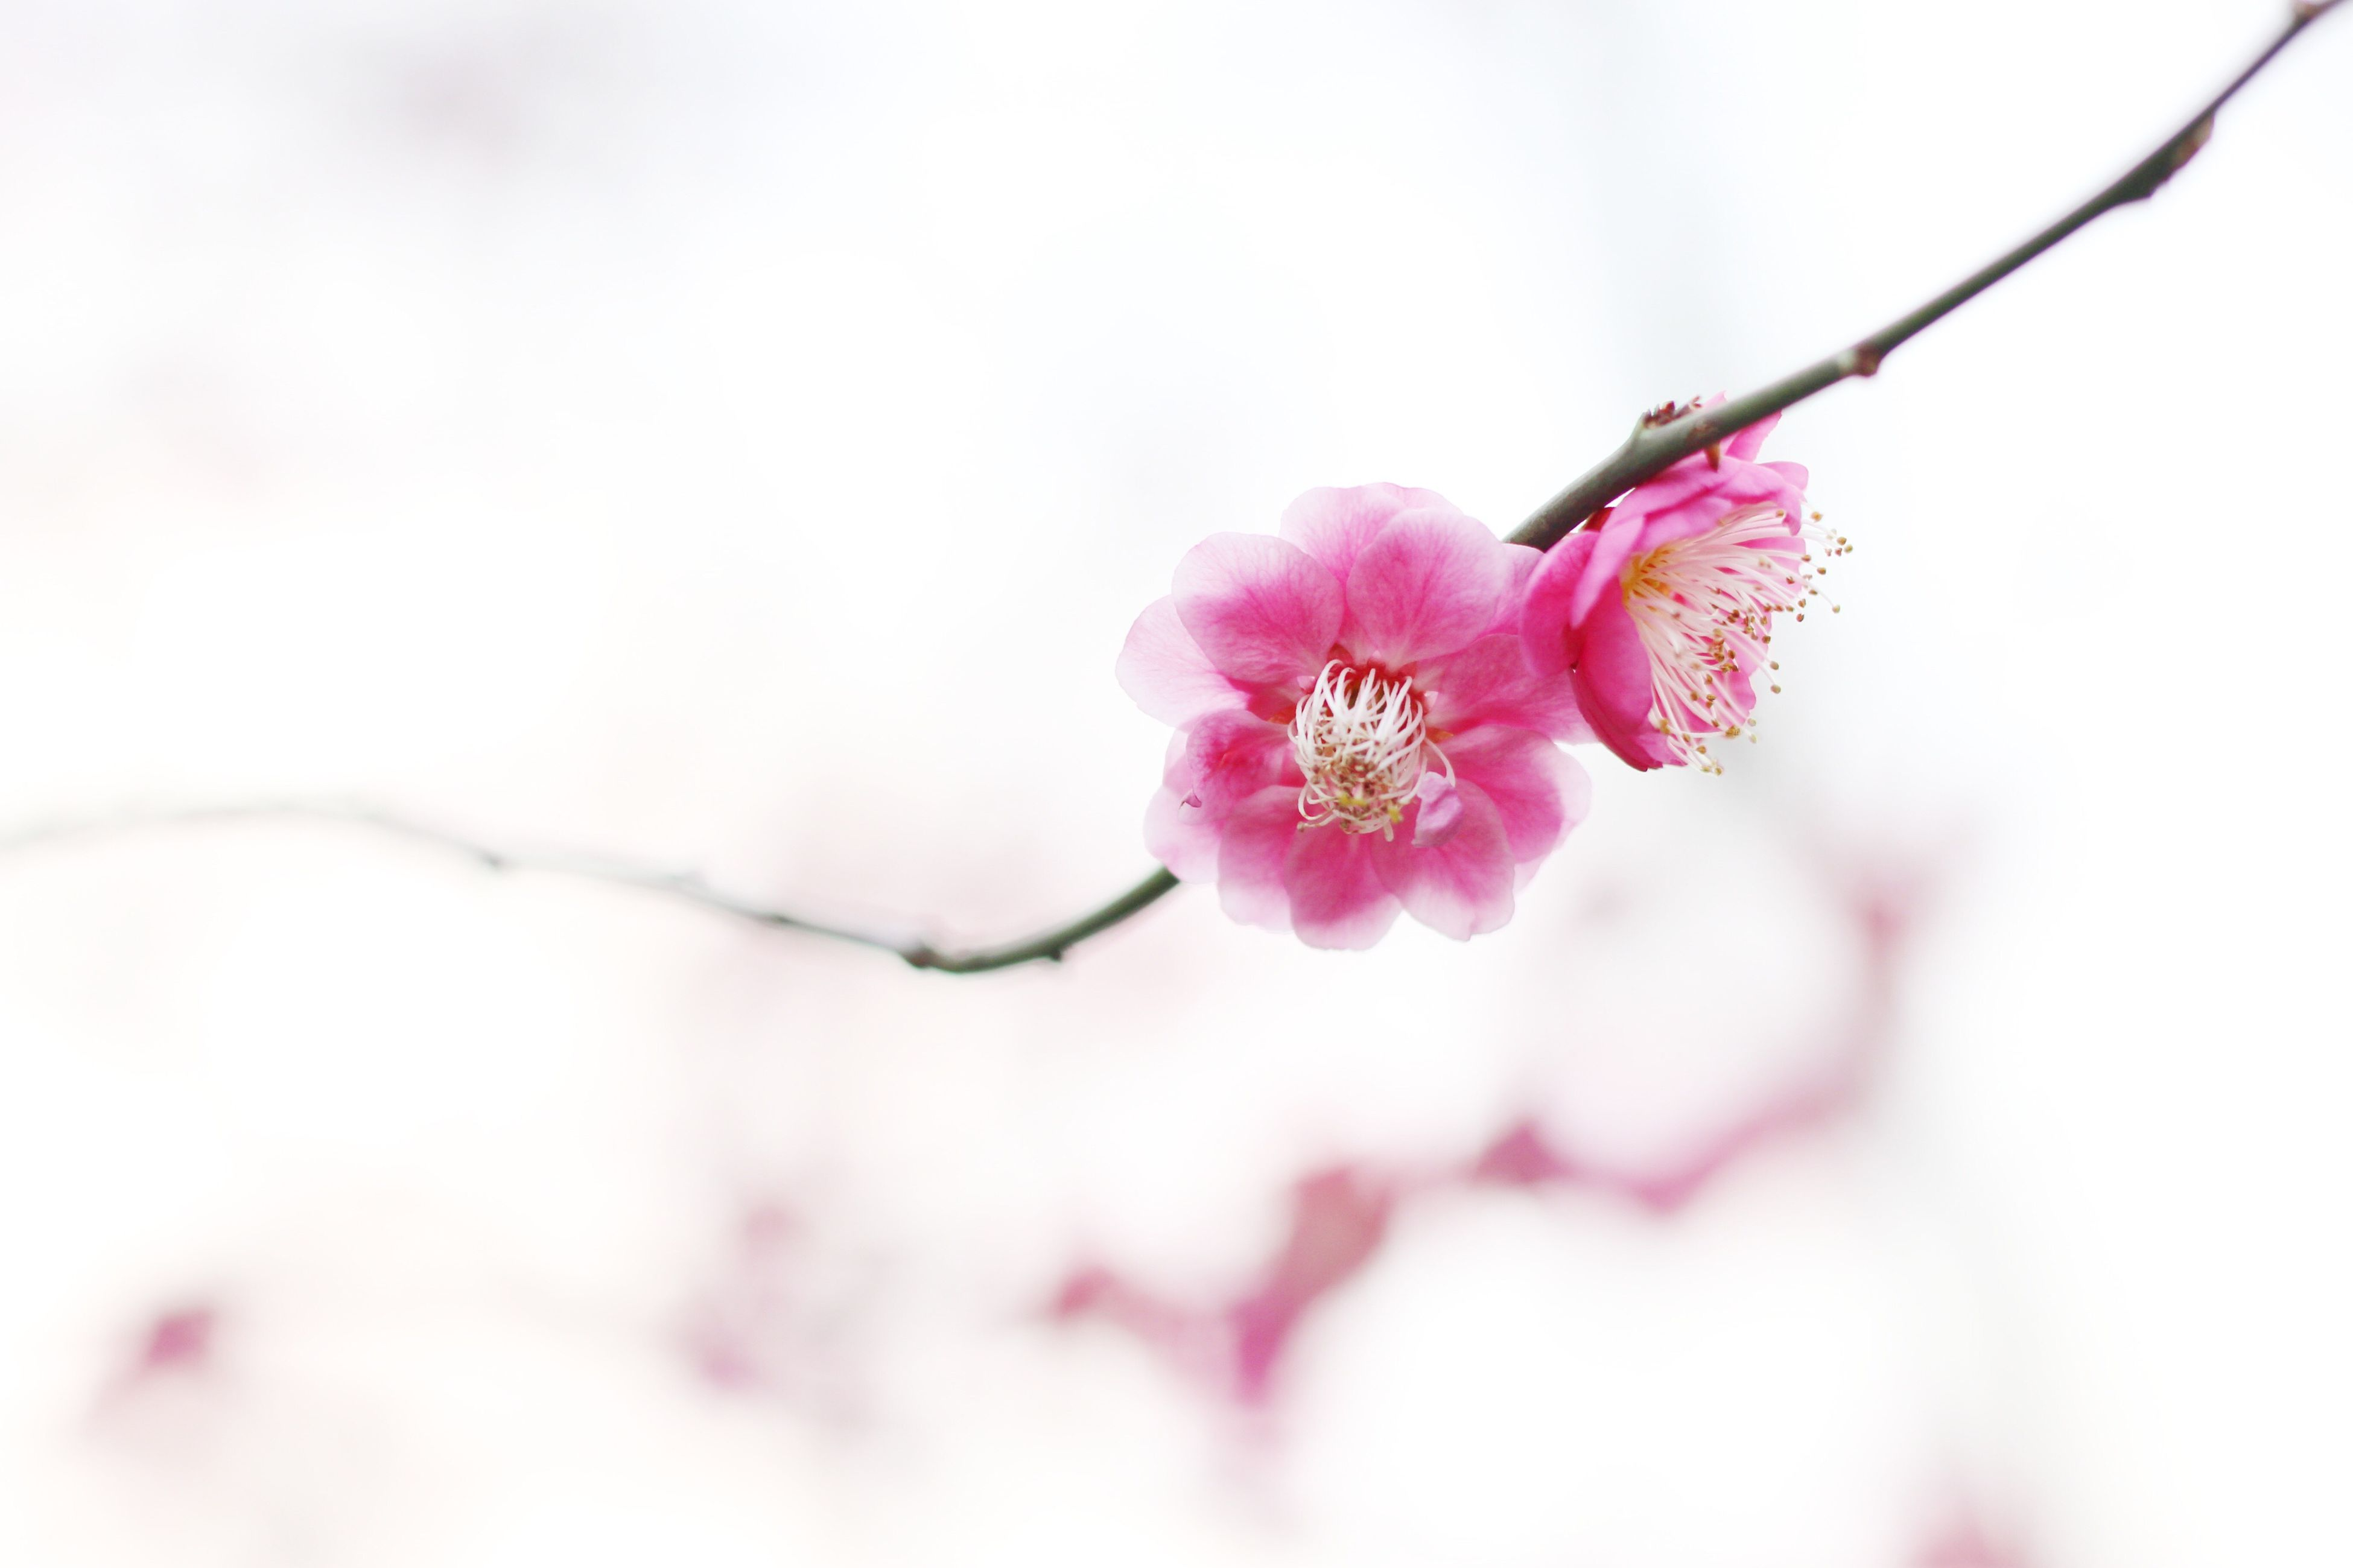 flower, freshness, fragility, petal, growth, beauty in nature, flower head, pink color, close-up, nature, focus on foreground, blossom, blooming, in bloom, branch, springtime, twig, cherry blossom, bud, stem